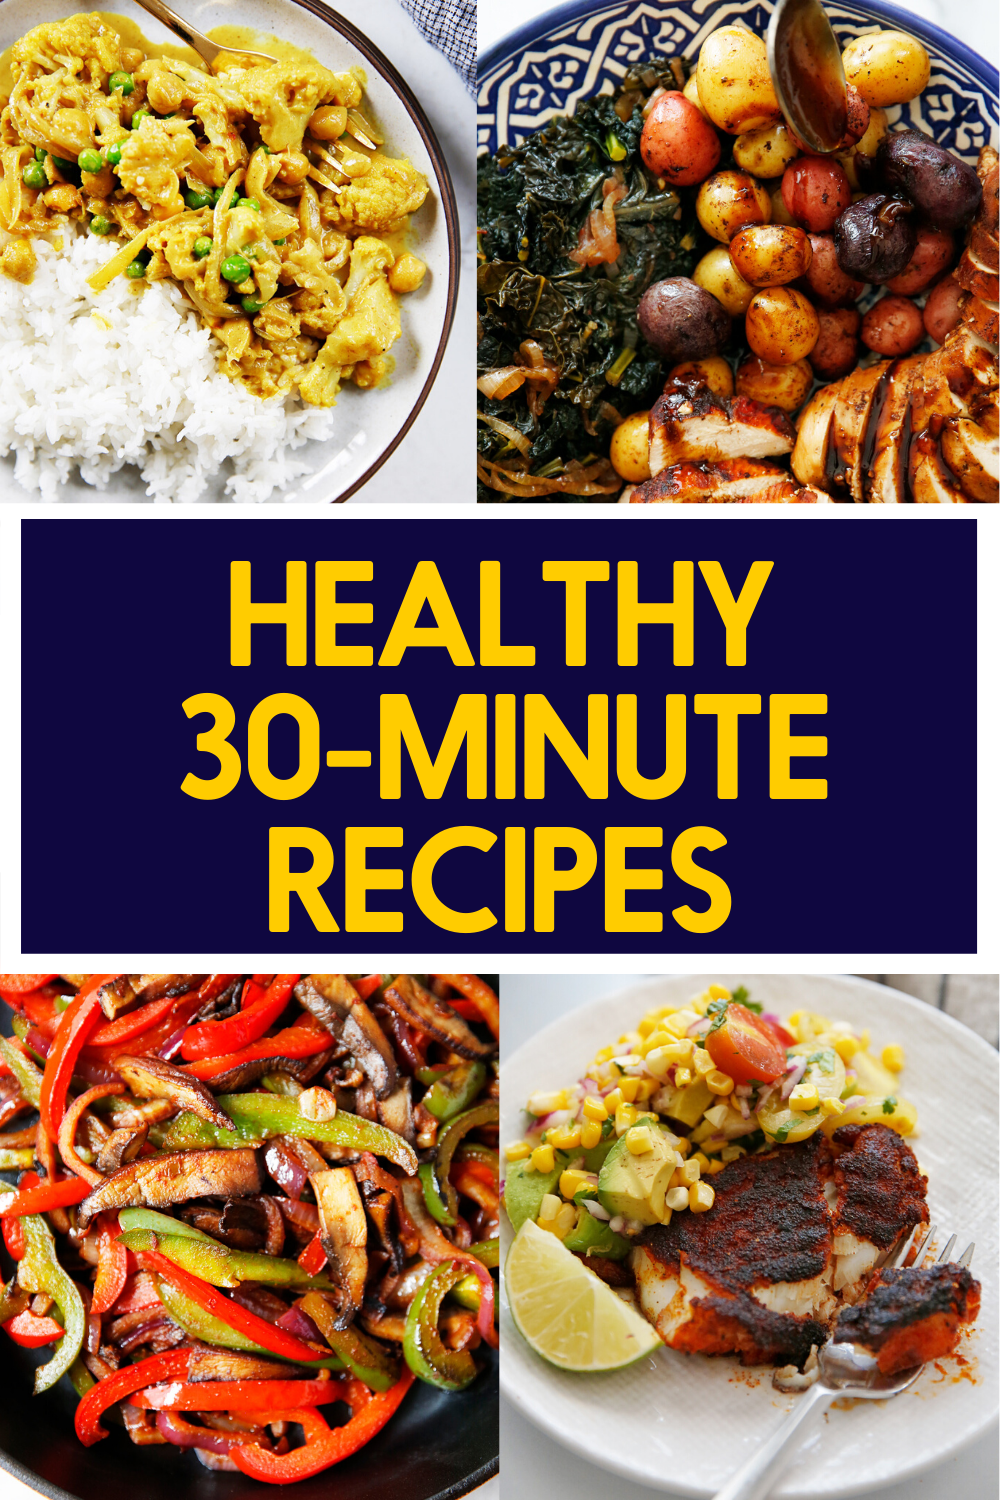 Healthy 30 Minute Meals Lexi S Clean Kitchen 30 Minute Meals Healthy 30 Minute Meals Healthy